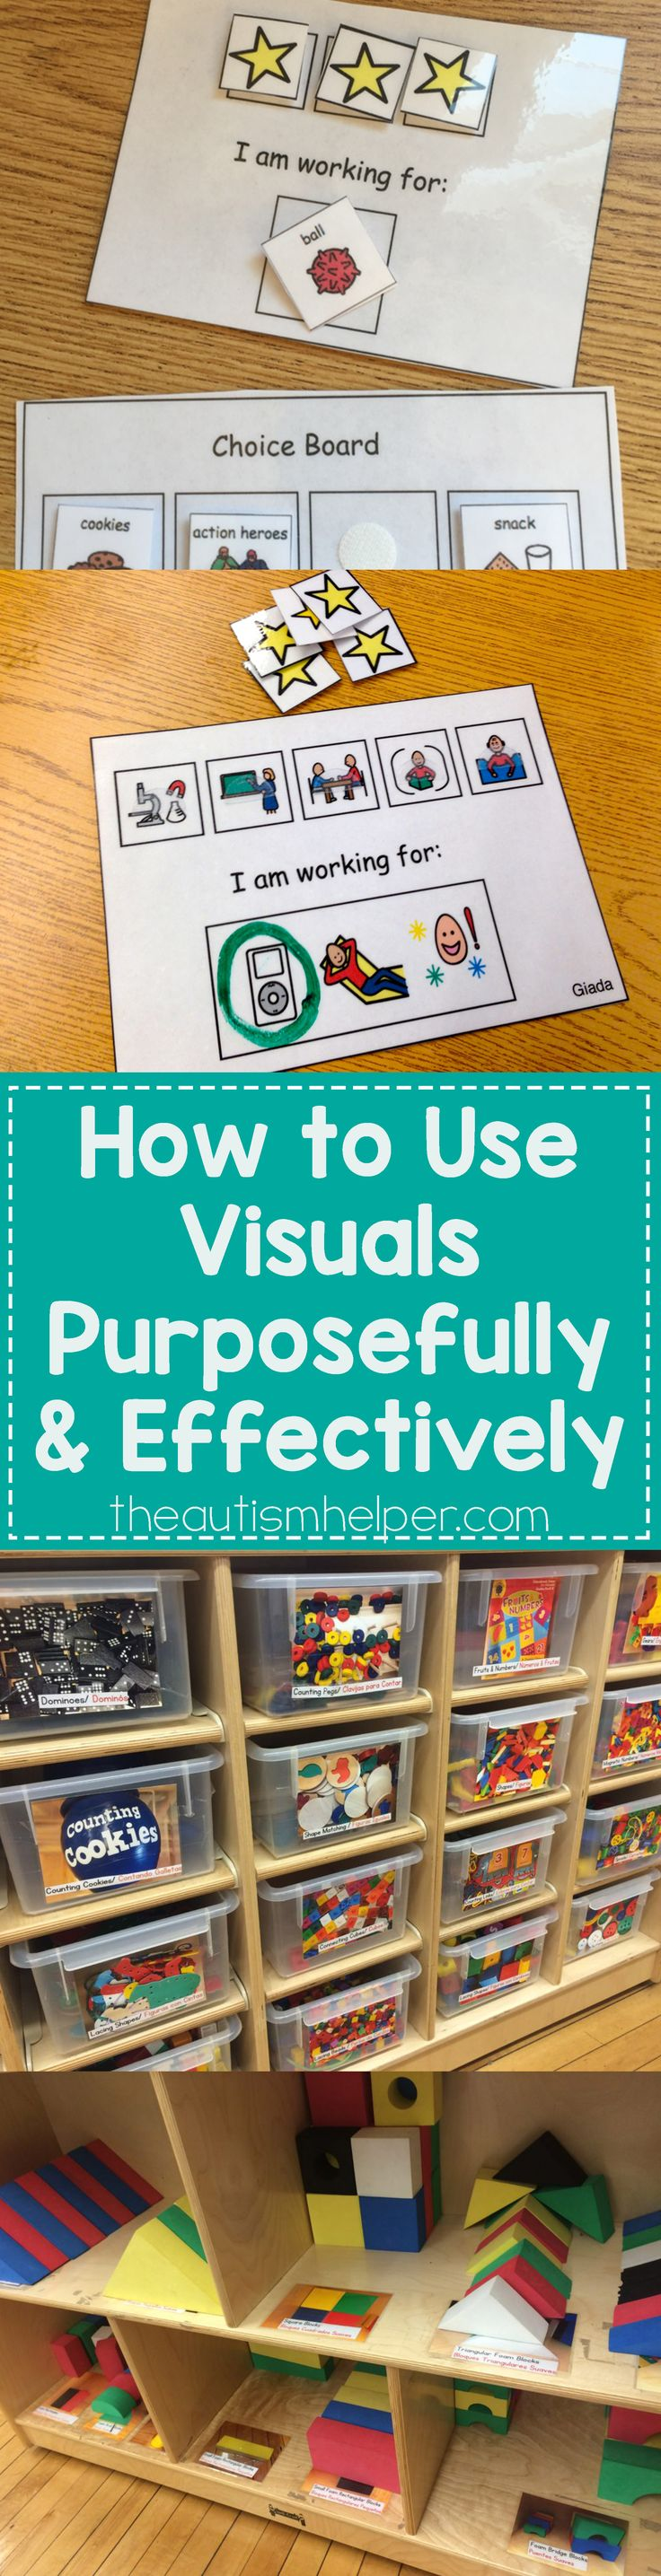 Once you've made sure you have visuals to match the verbal requests you make on a daily basis, your job isn't over. Now it's time to teach your students how to use those visuals & what they mean. Essential tips for using visuals purposefully & effectively today on the blog! From theautismhelper.com